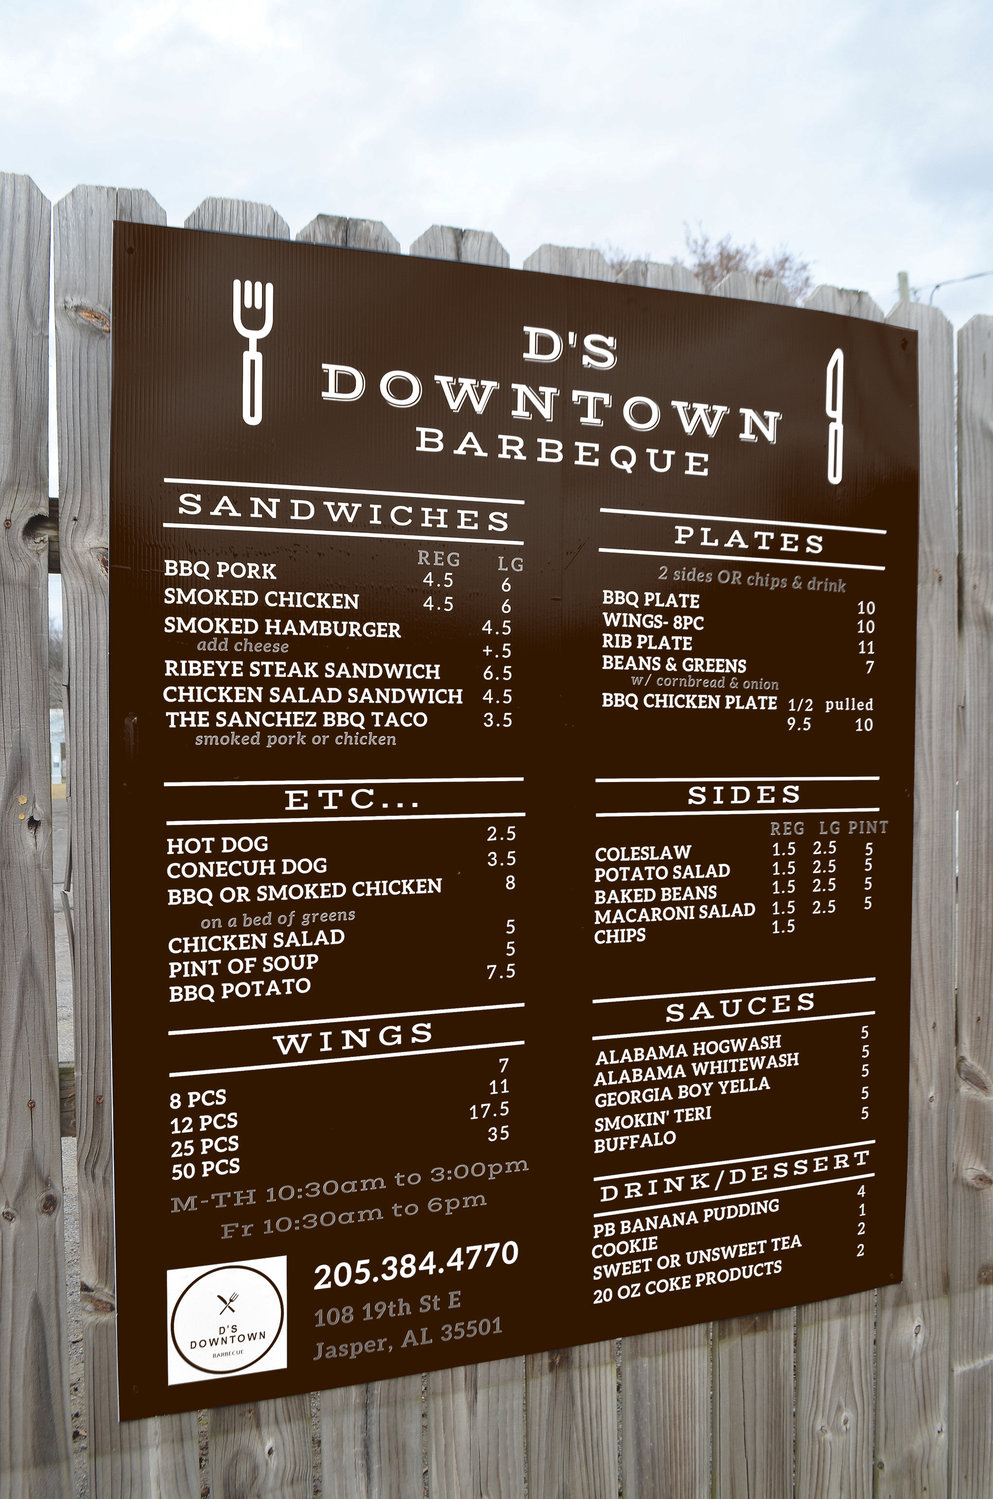 The menu for D's Downtown Barbecue